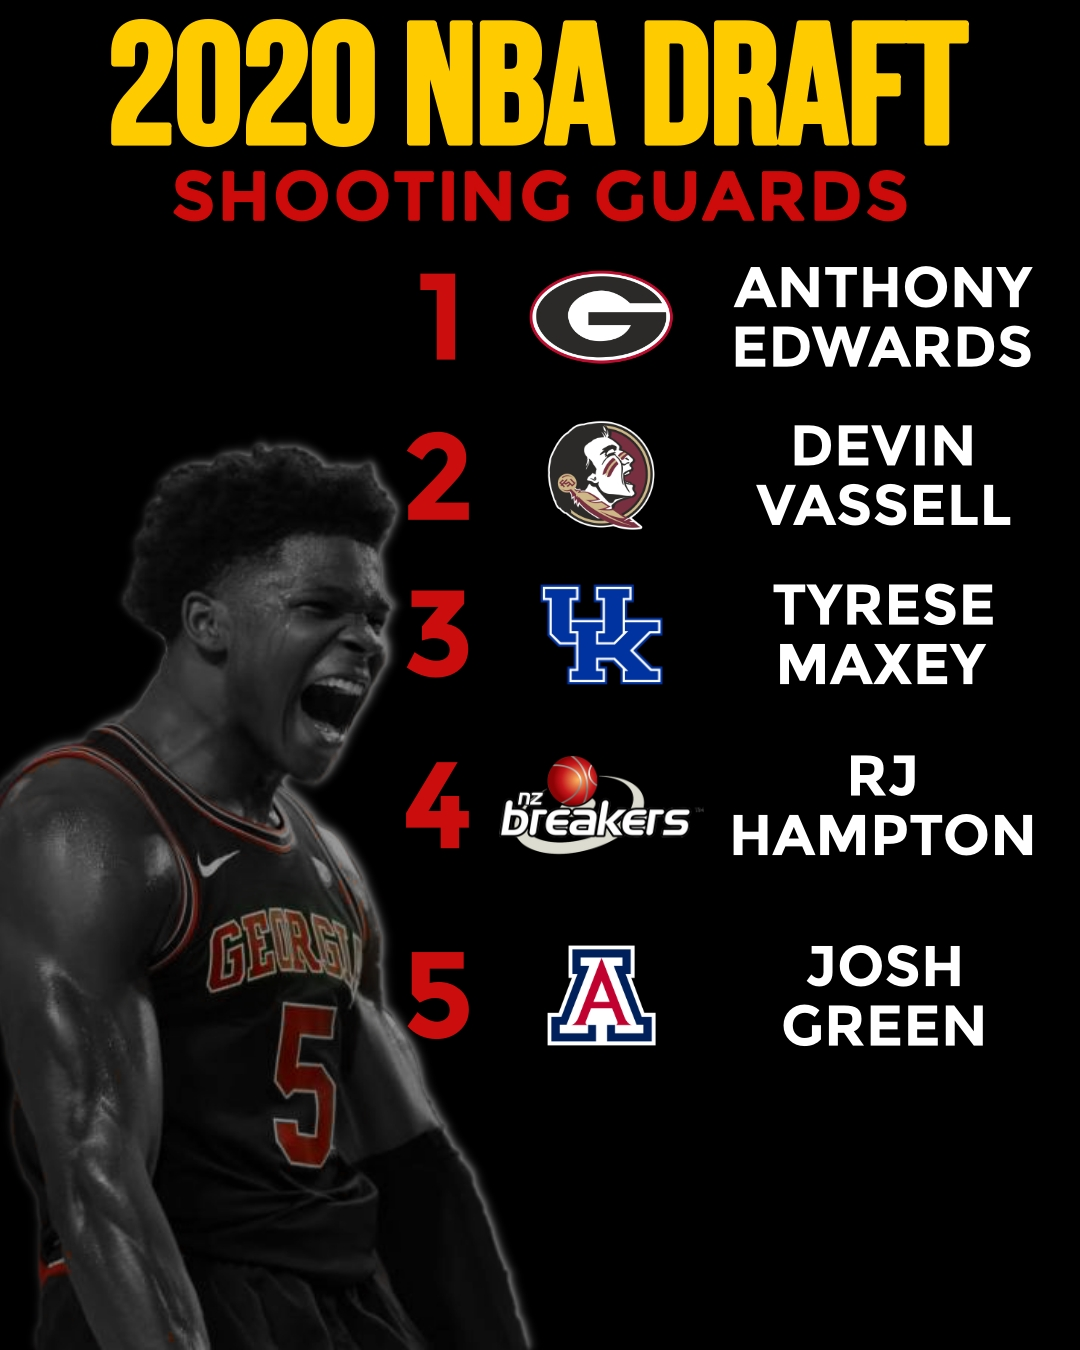 Top 5 Shooting Guards